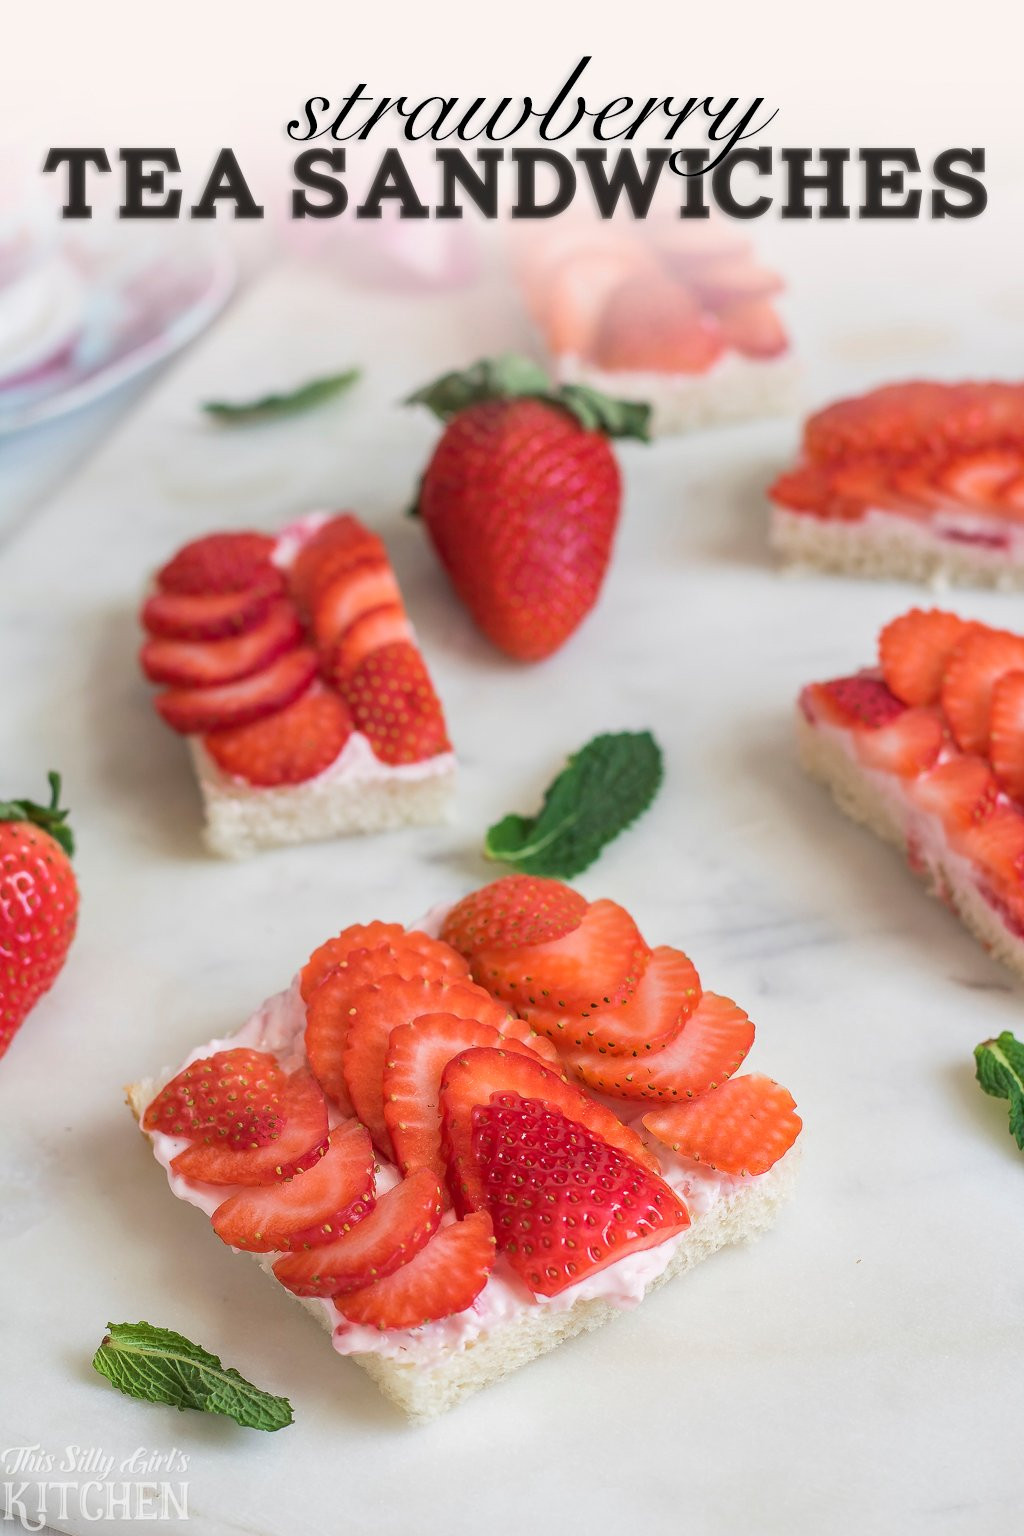 Strawberry Tea Sandwiches, homemade fresh strawberry cream cheese spread on top of simple white bread with sliced strawberries. Perfect for tea-time! Recipe from ThisSillyGirlsKitchen.com